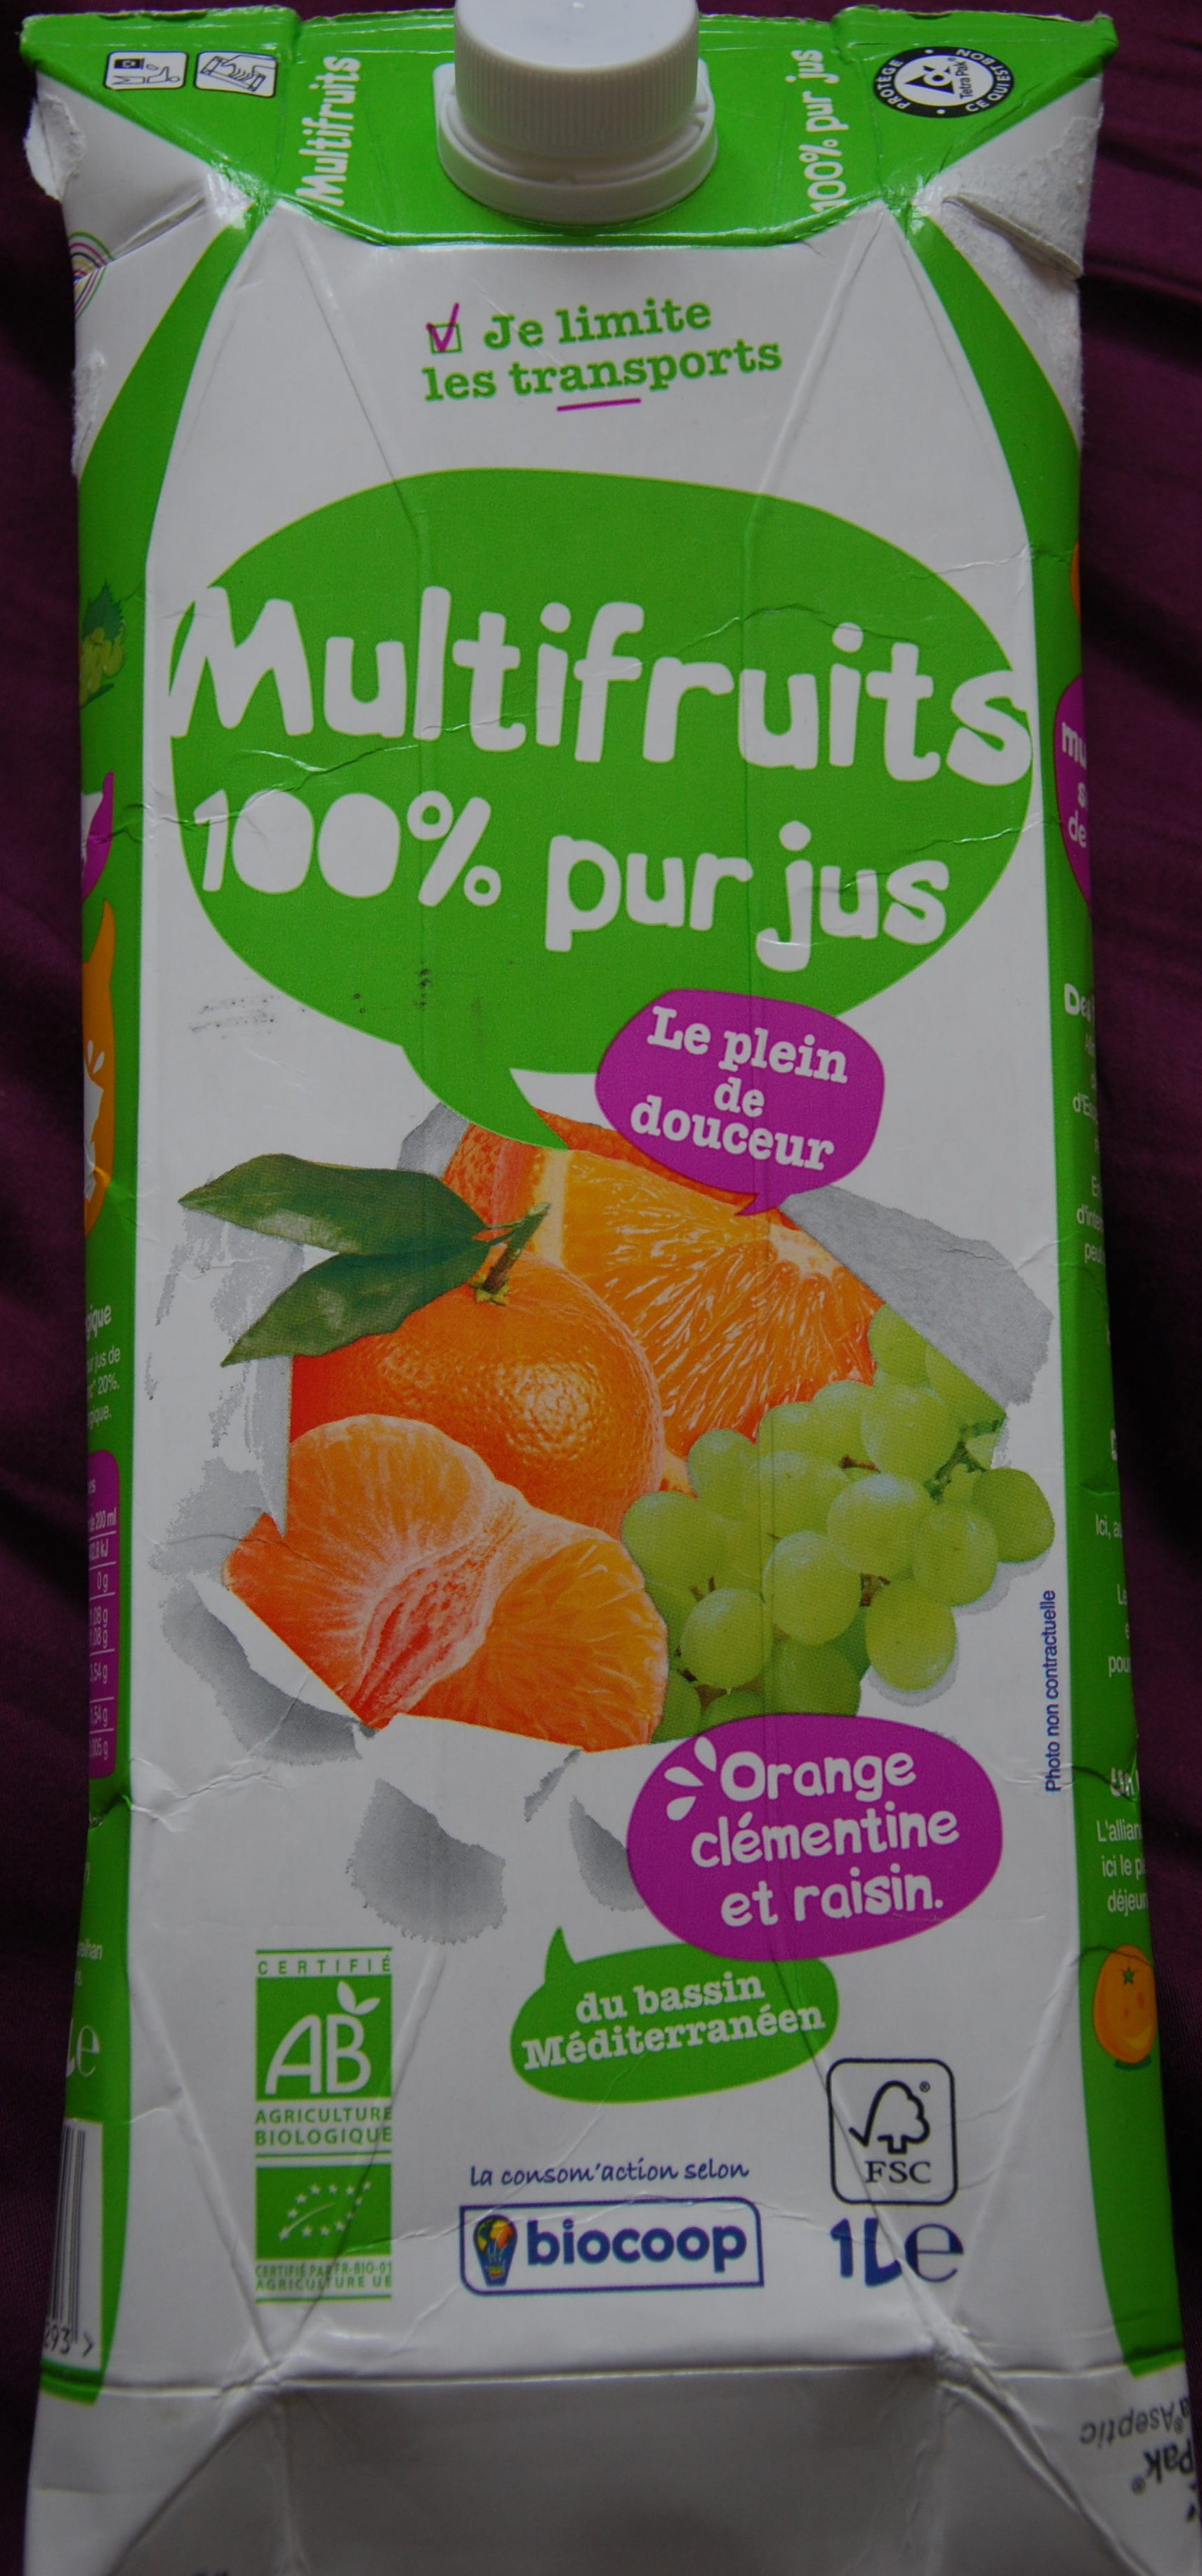 Multifruit 100% pur jus - Product